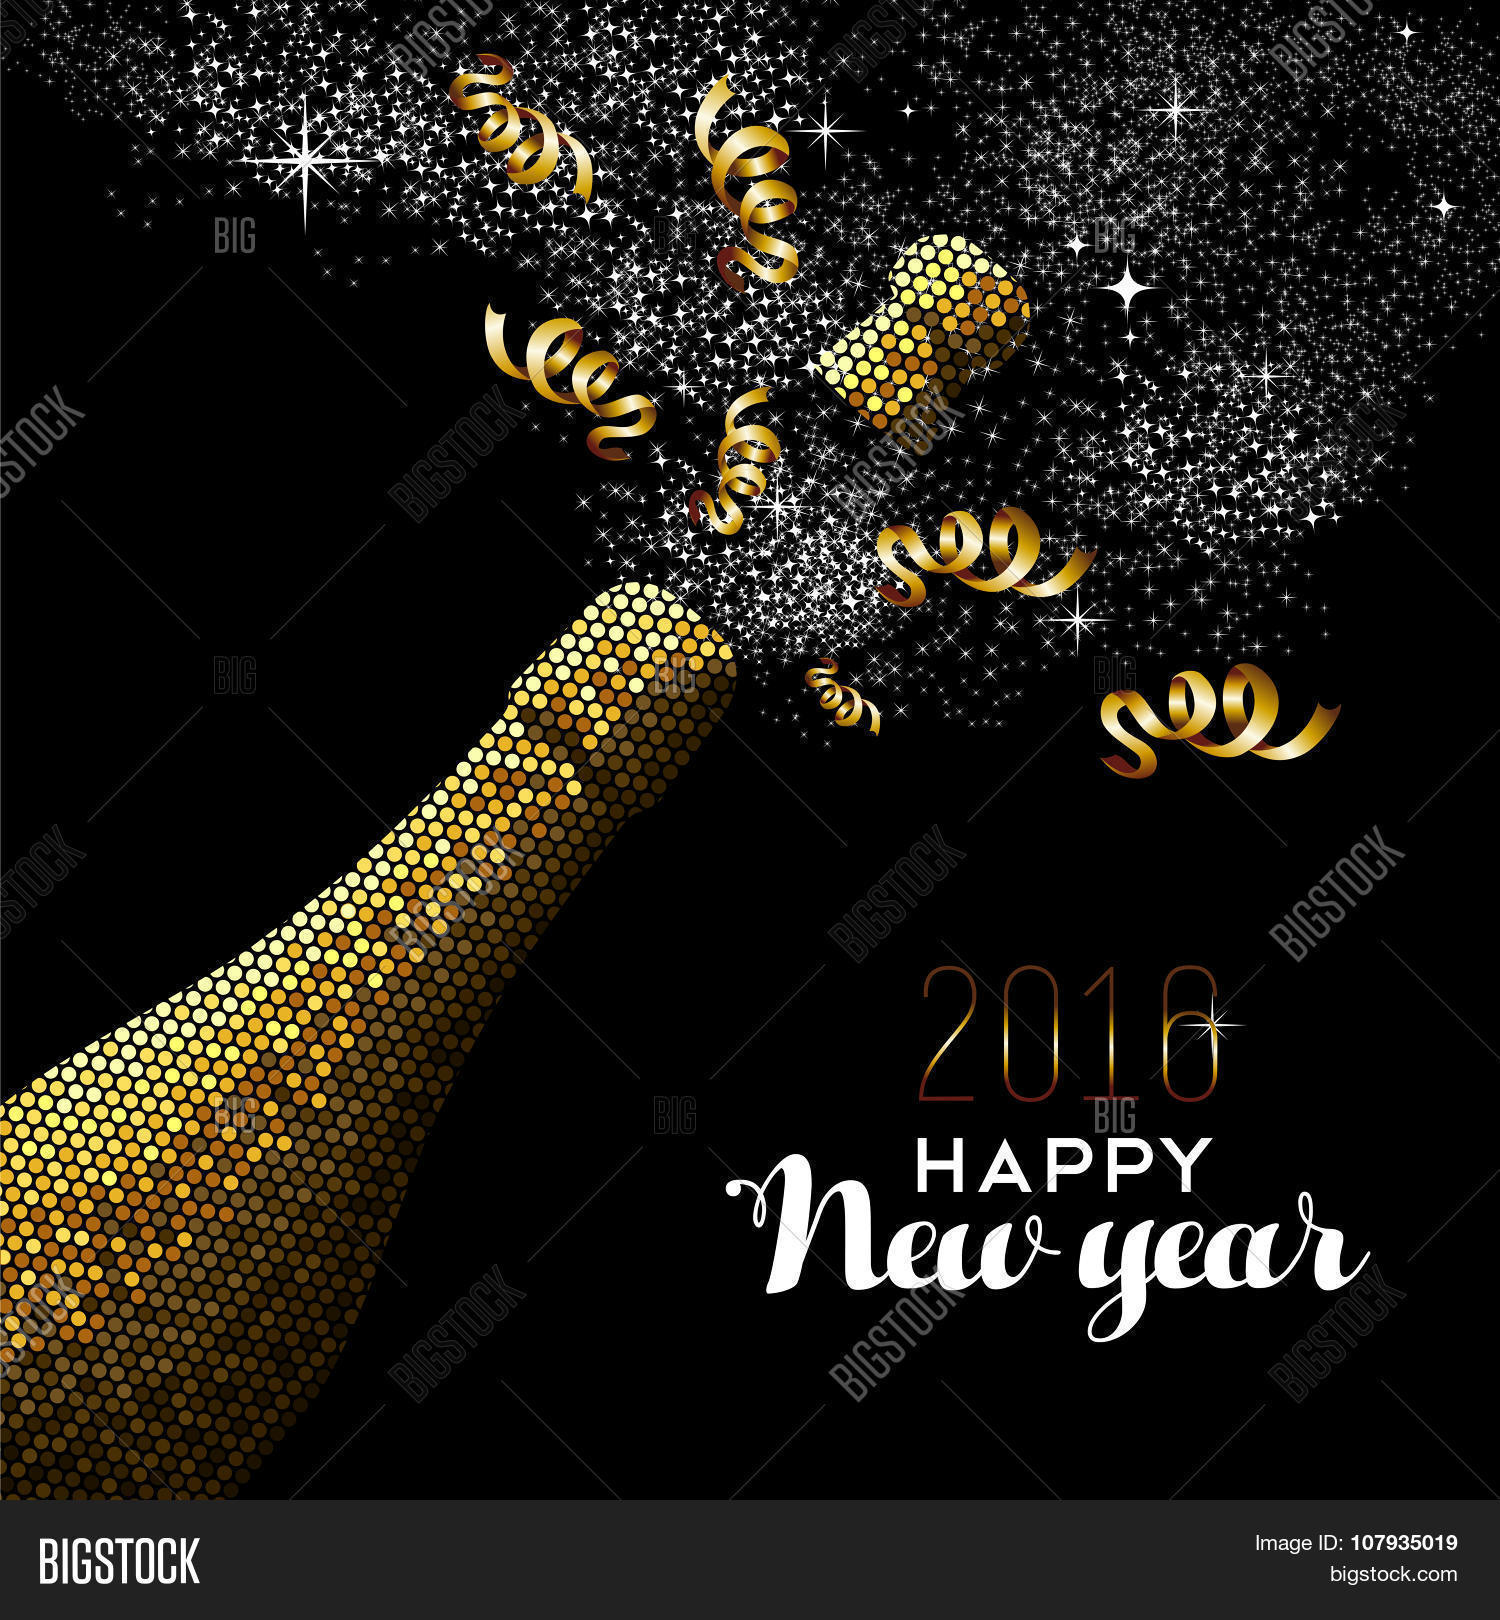 drink happy new year